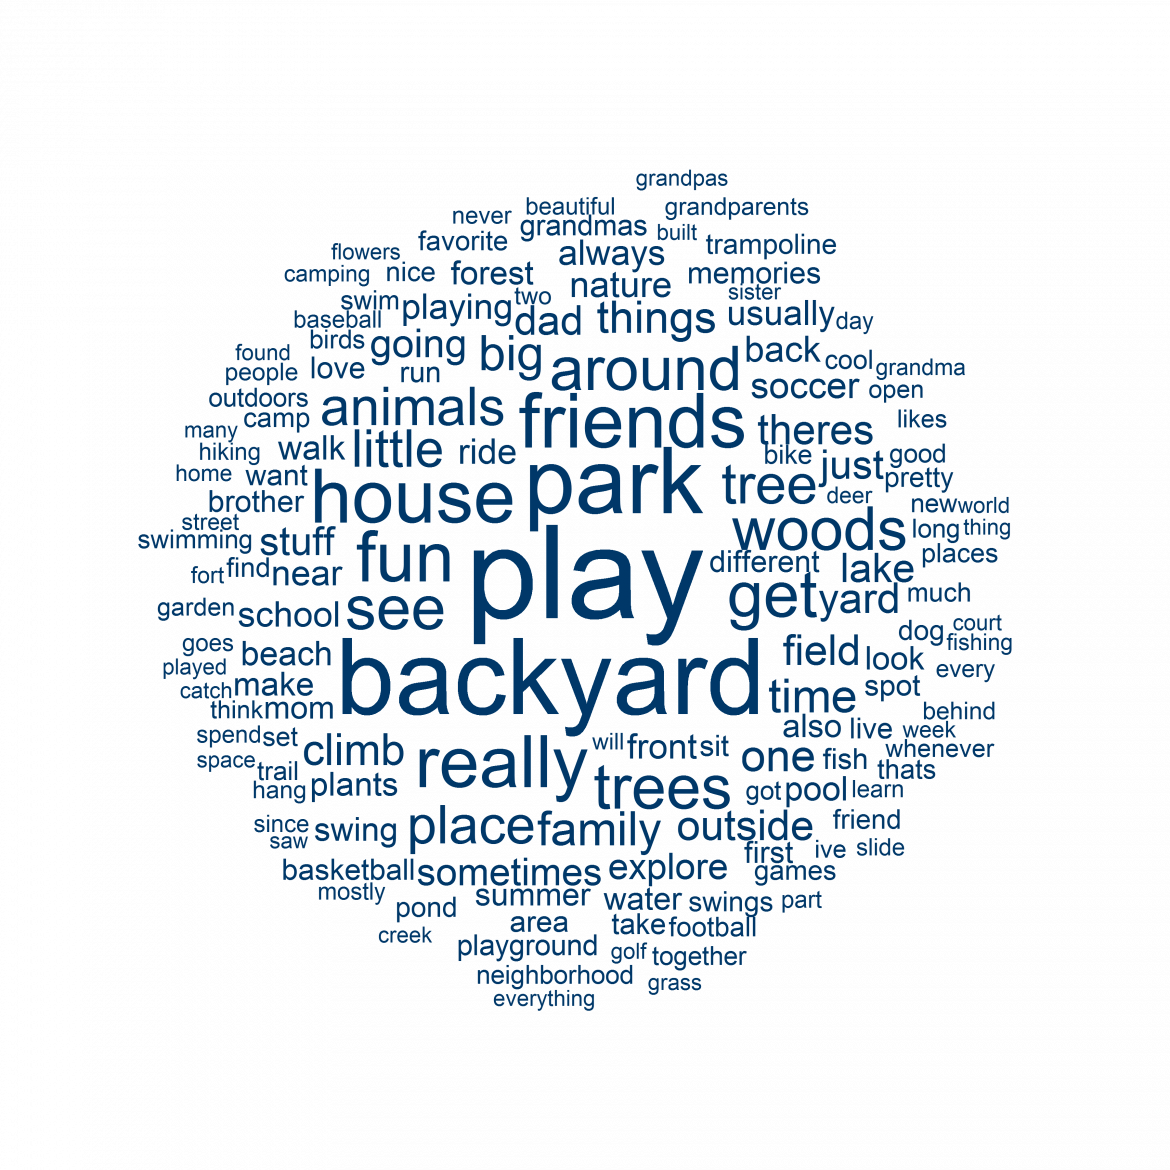 Word cloud showing frequency of words used to describe children's special place outdoors